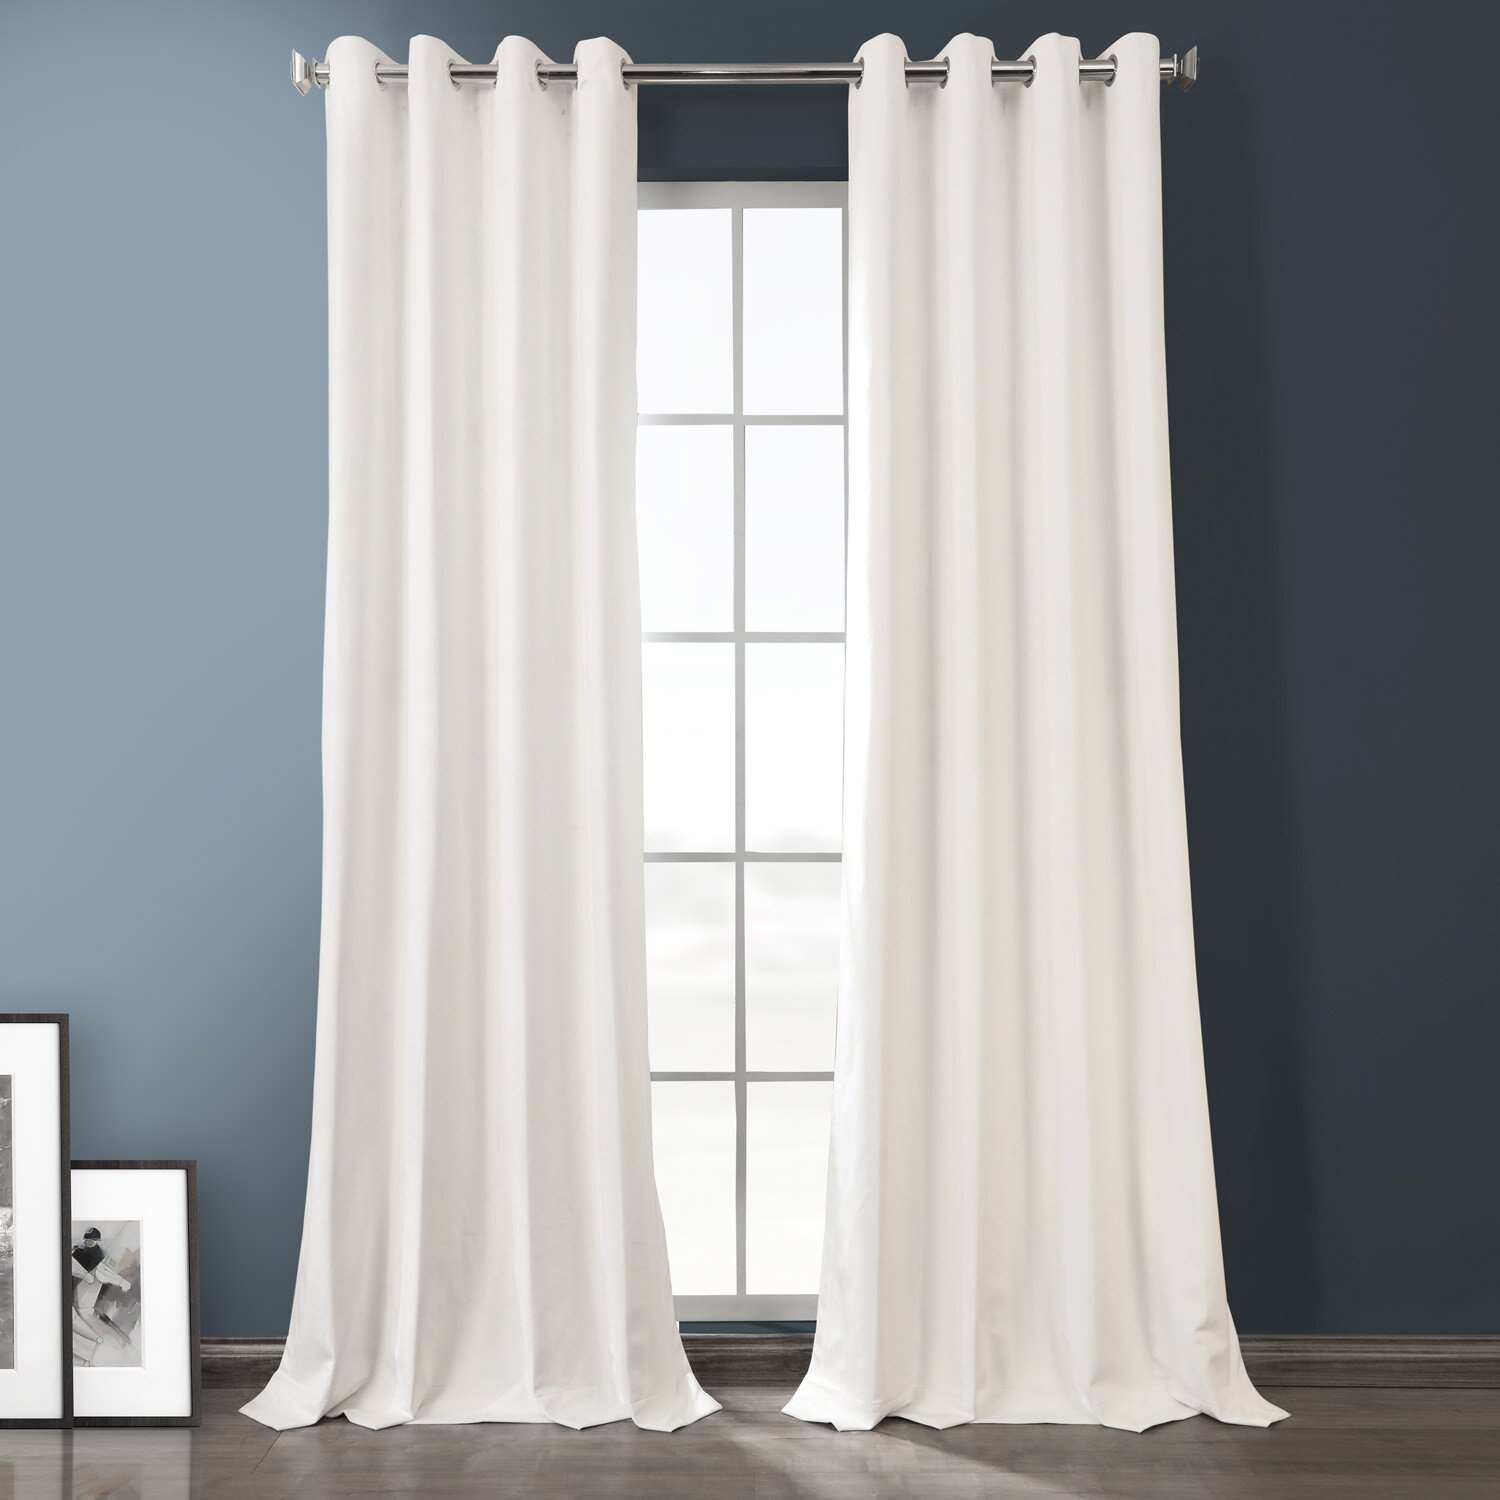 Solid Blackout Thermal Grommet 2 Curtains / Drapes (Set of 2)